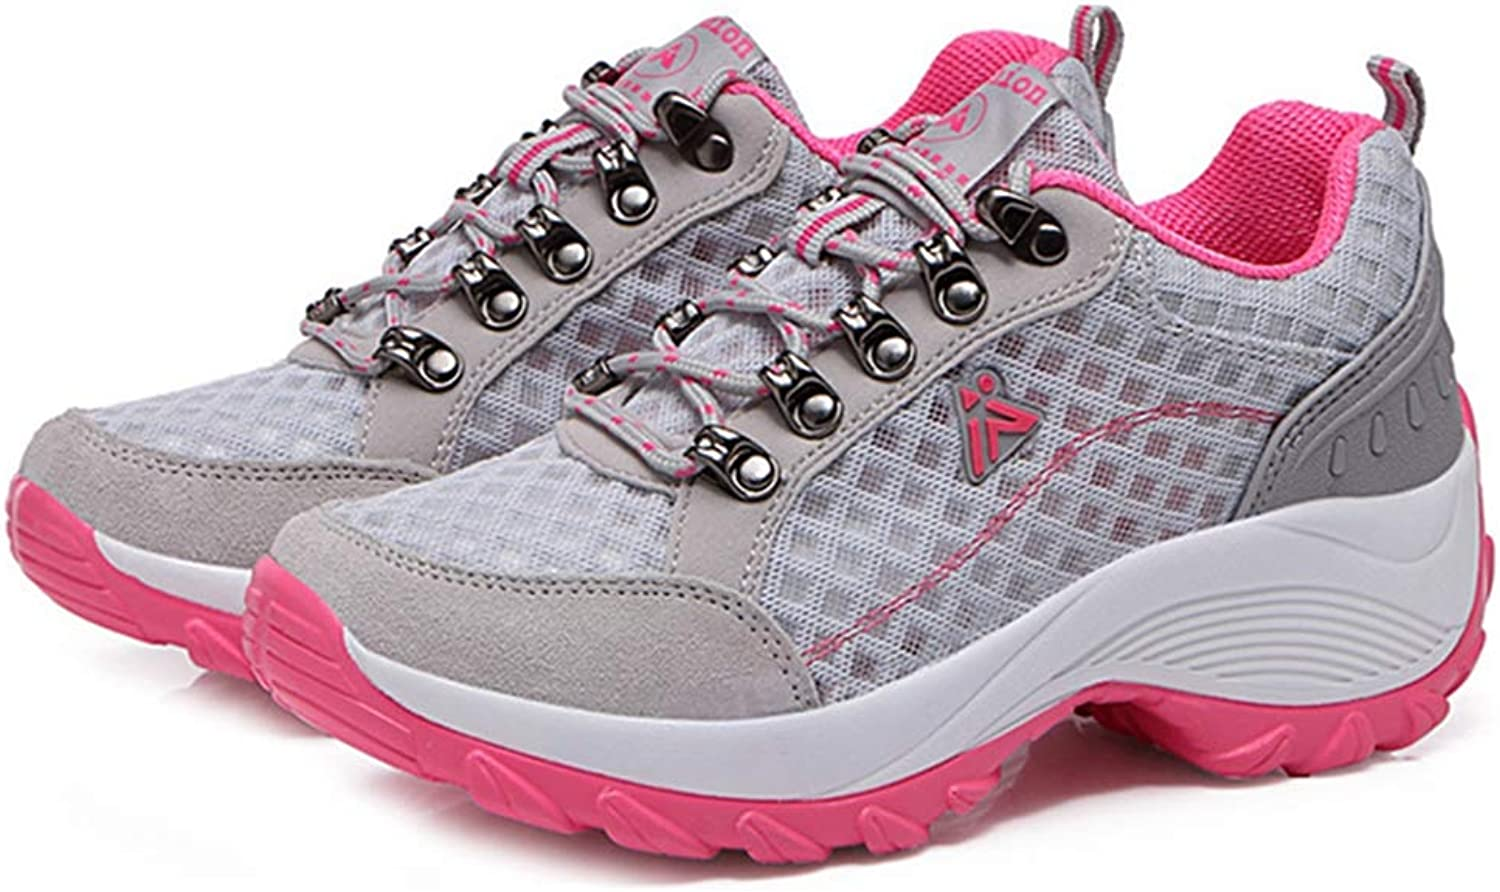 GIY Hiking shoes for Women Outdoor Running Trail Hiker Lightweight Mesh Non-Slip Athletic Climbing Sneaker